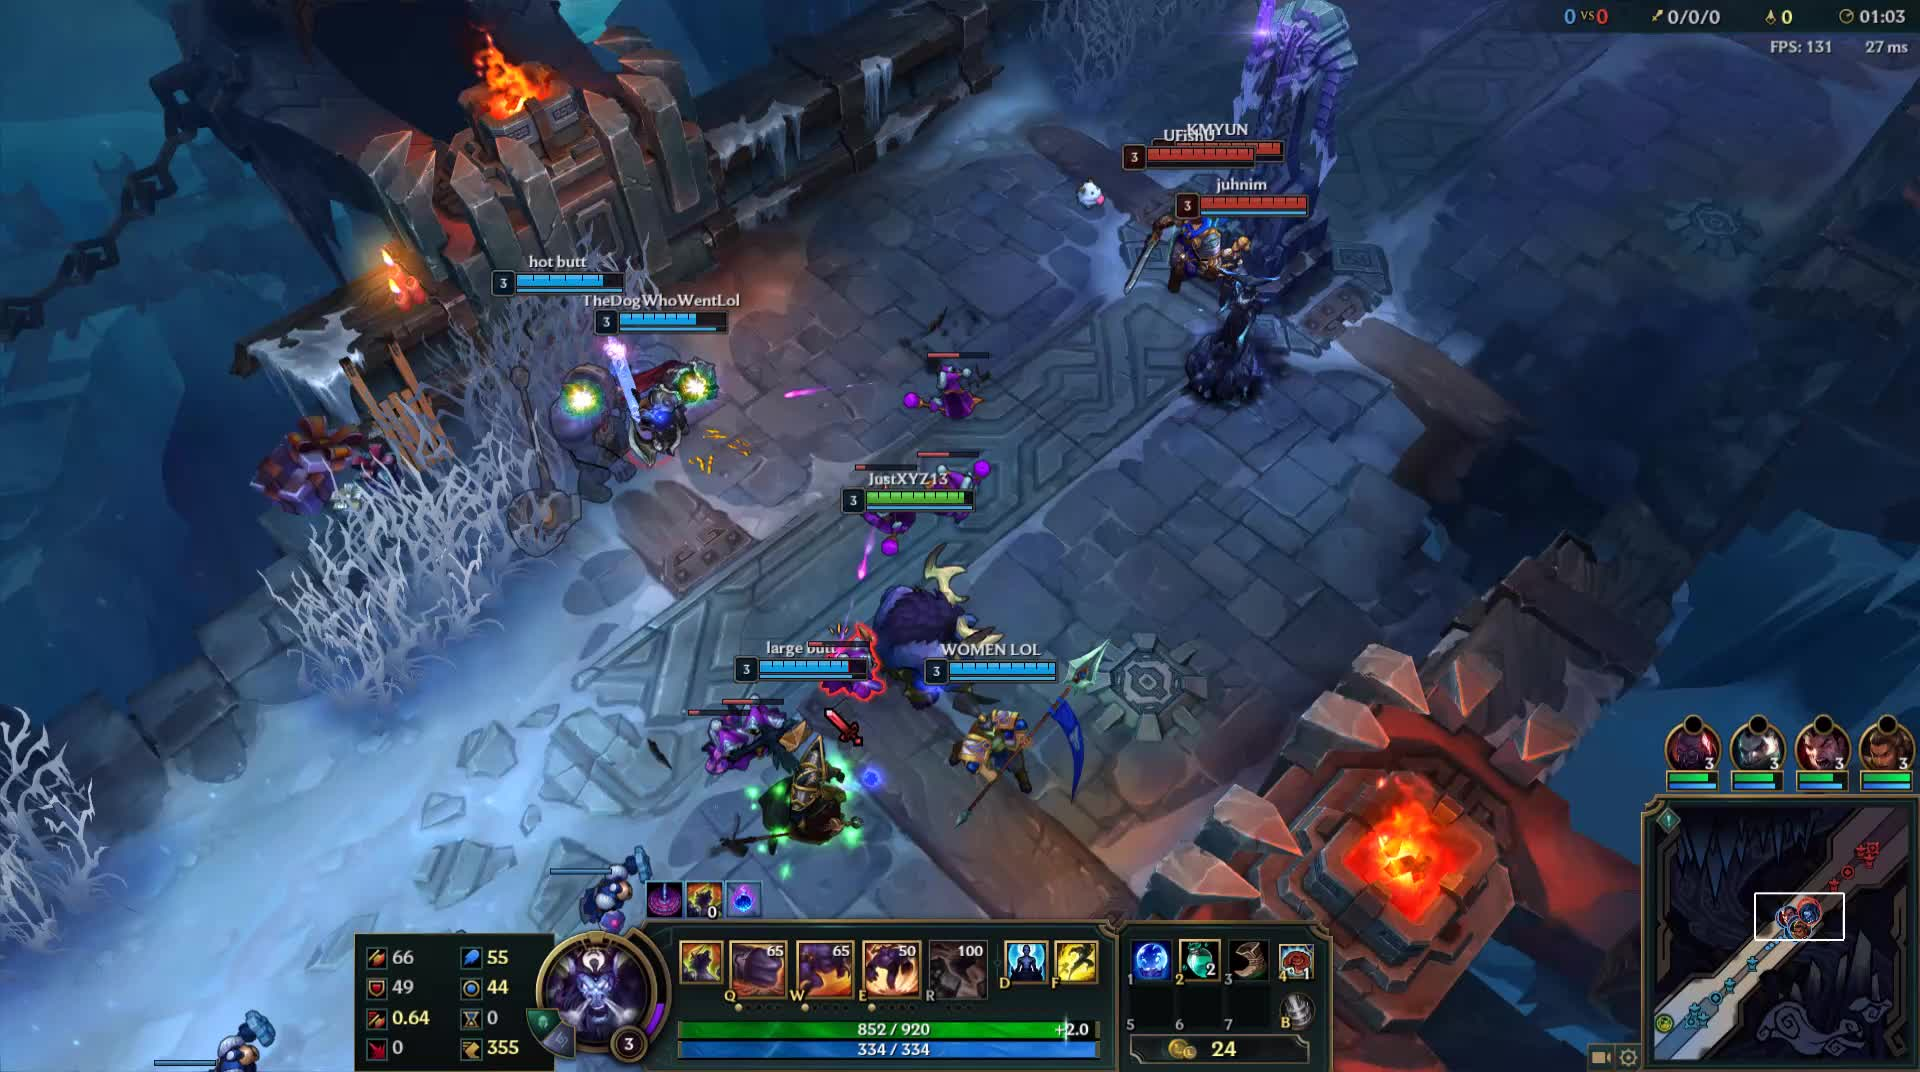 Aram Destruction GIFs